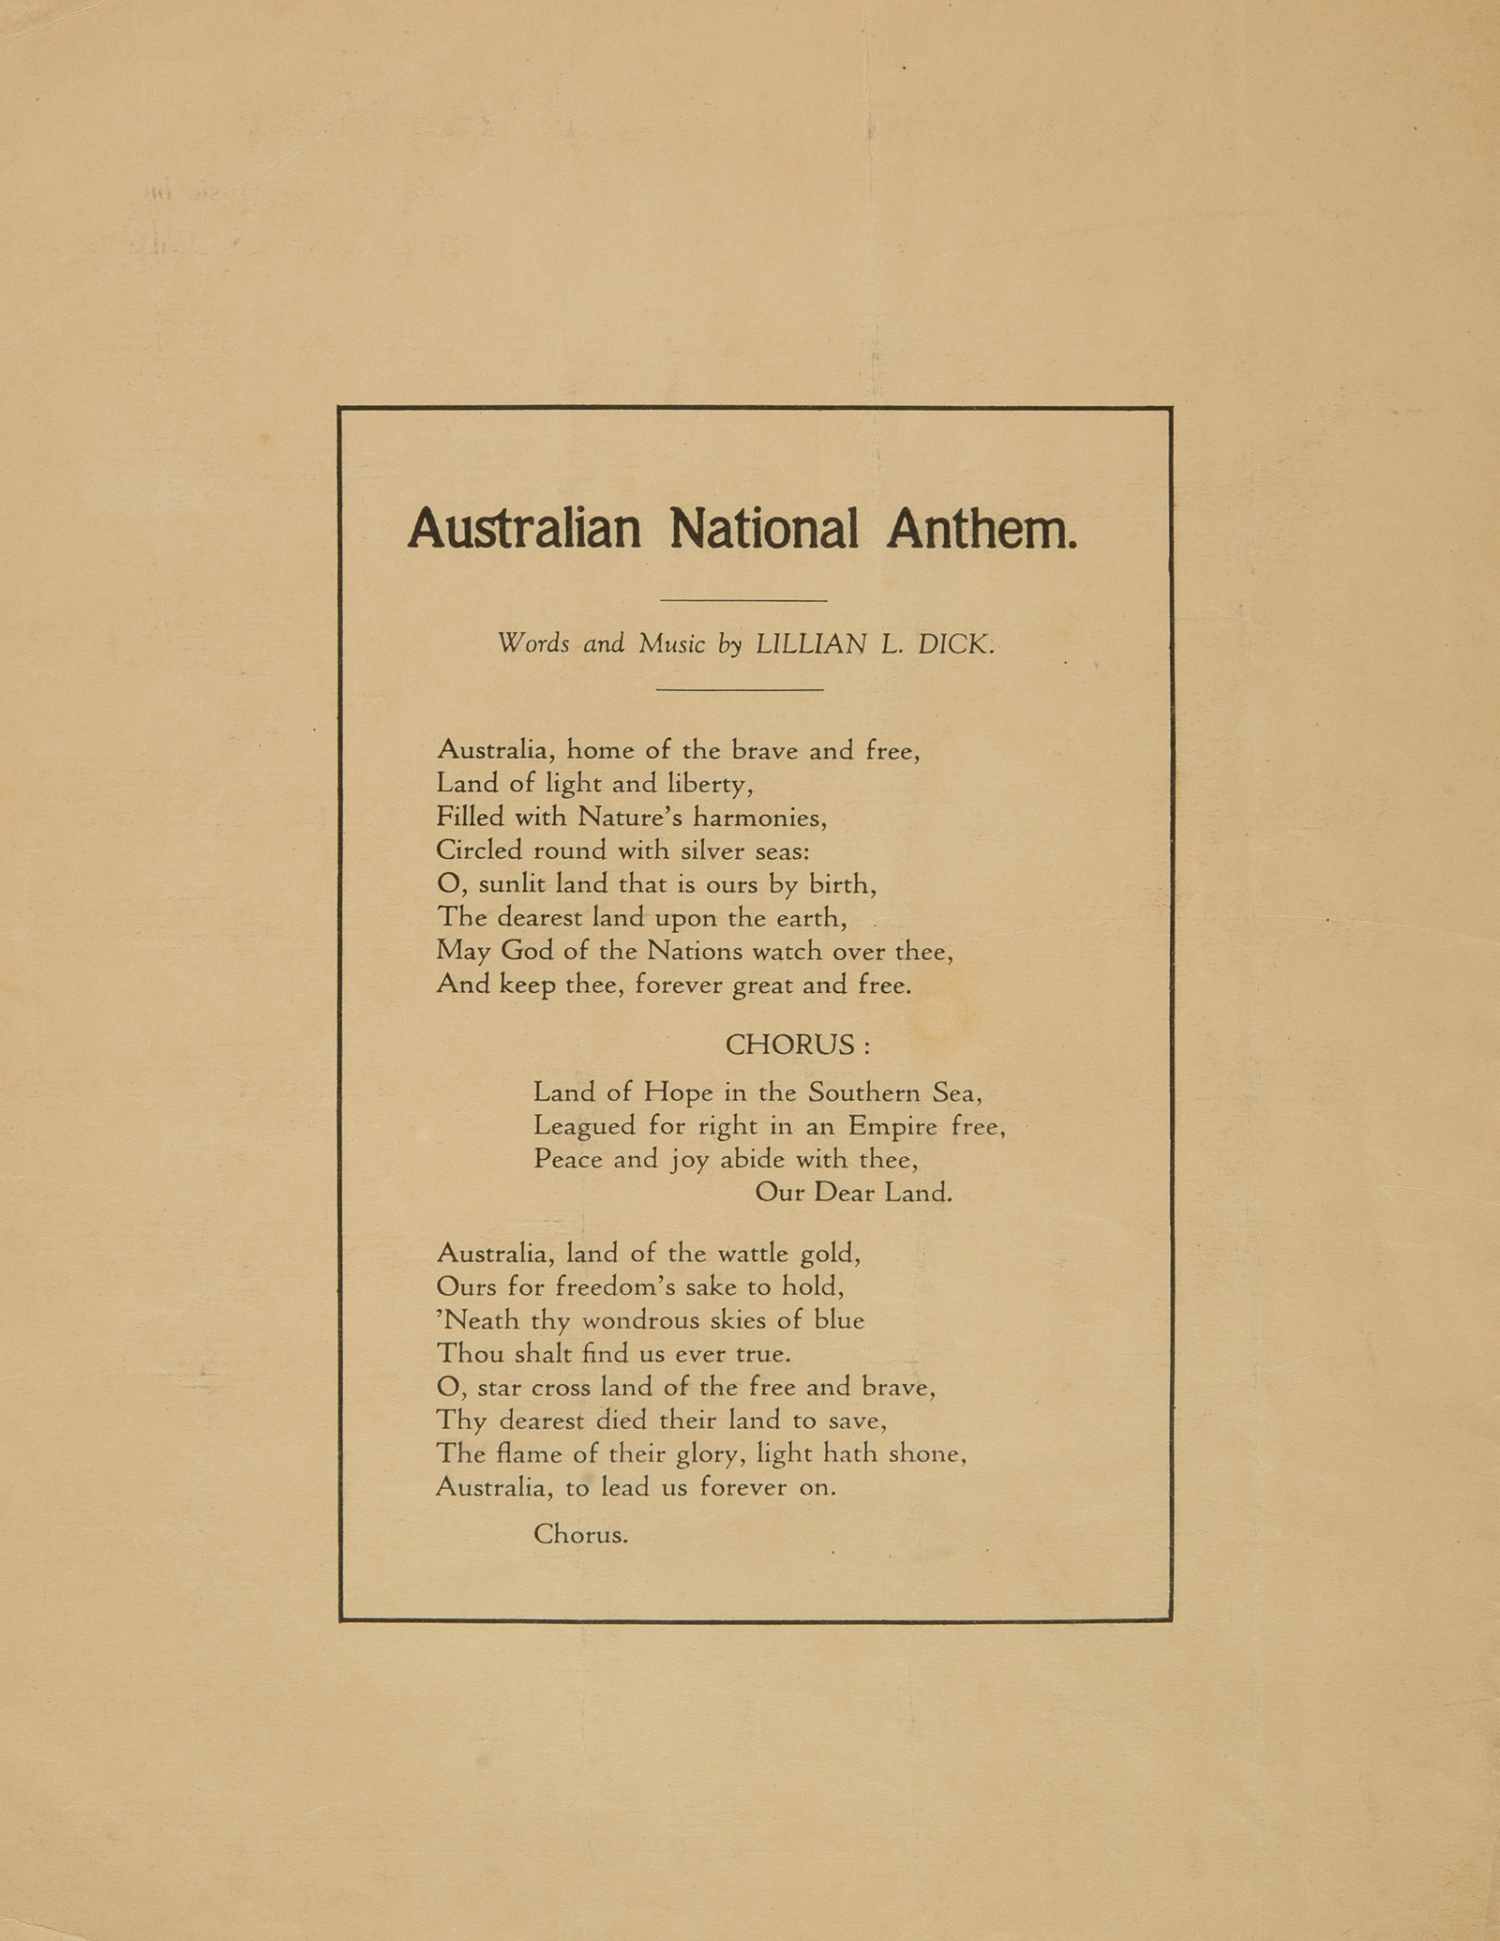 Sheet music lyrics,' Australian National Anthem', words and music by Lillian L. Dick, published 1934